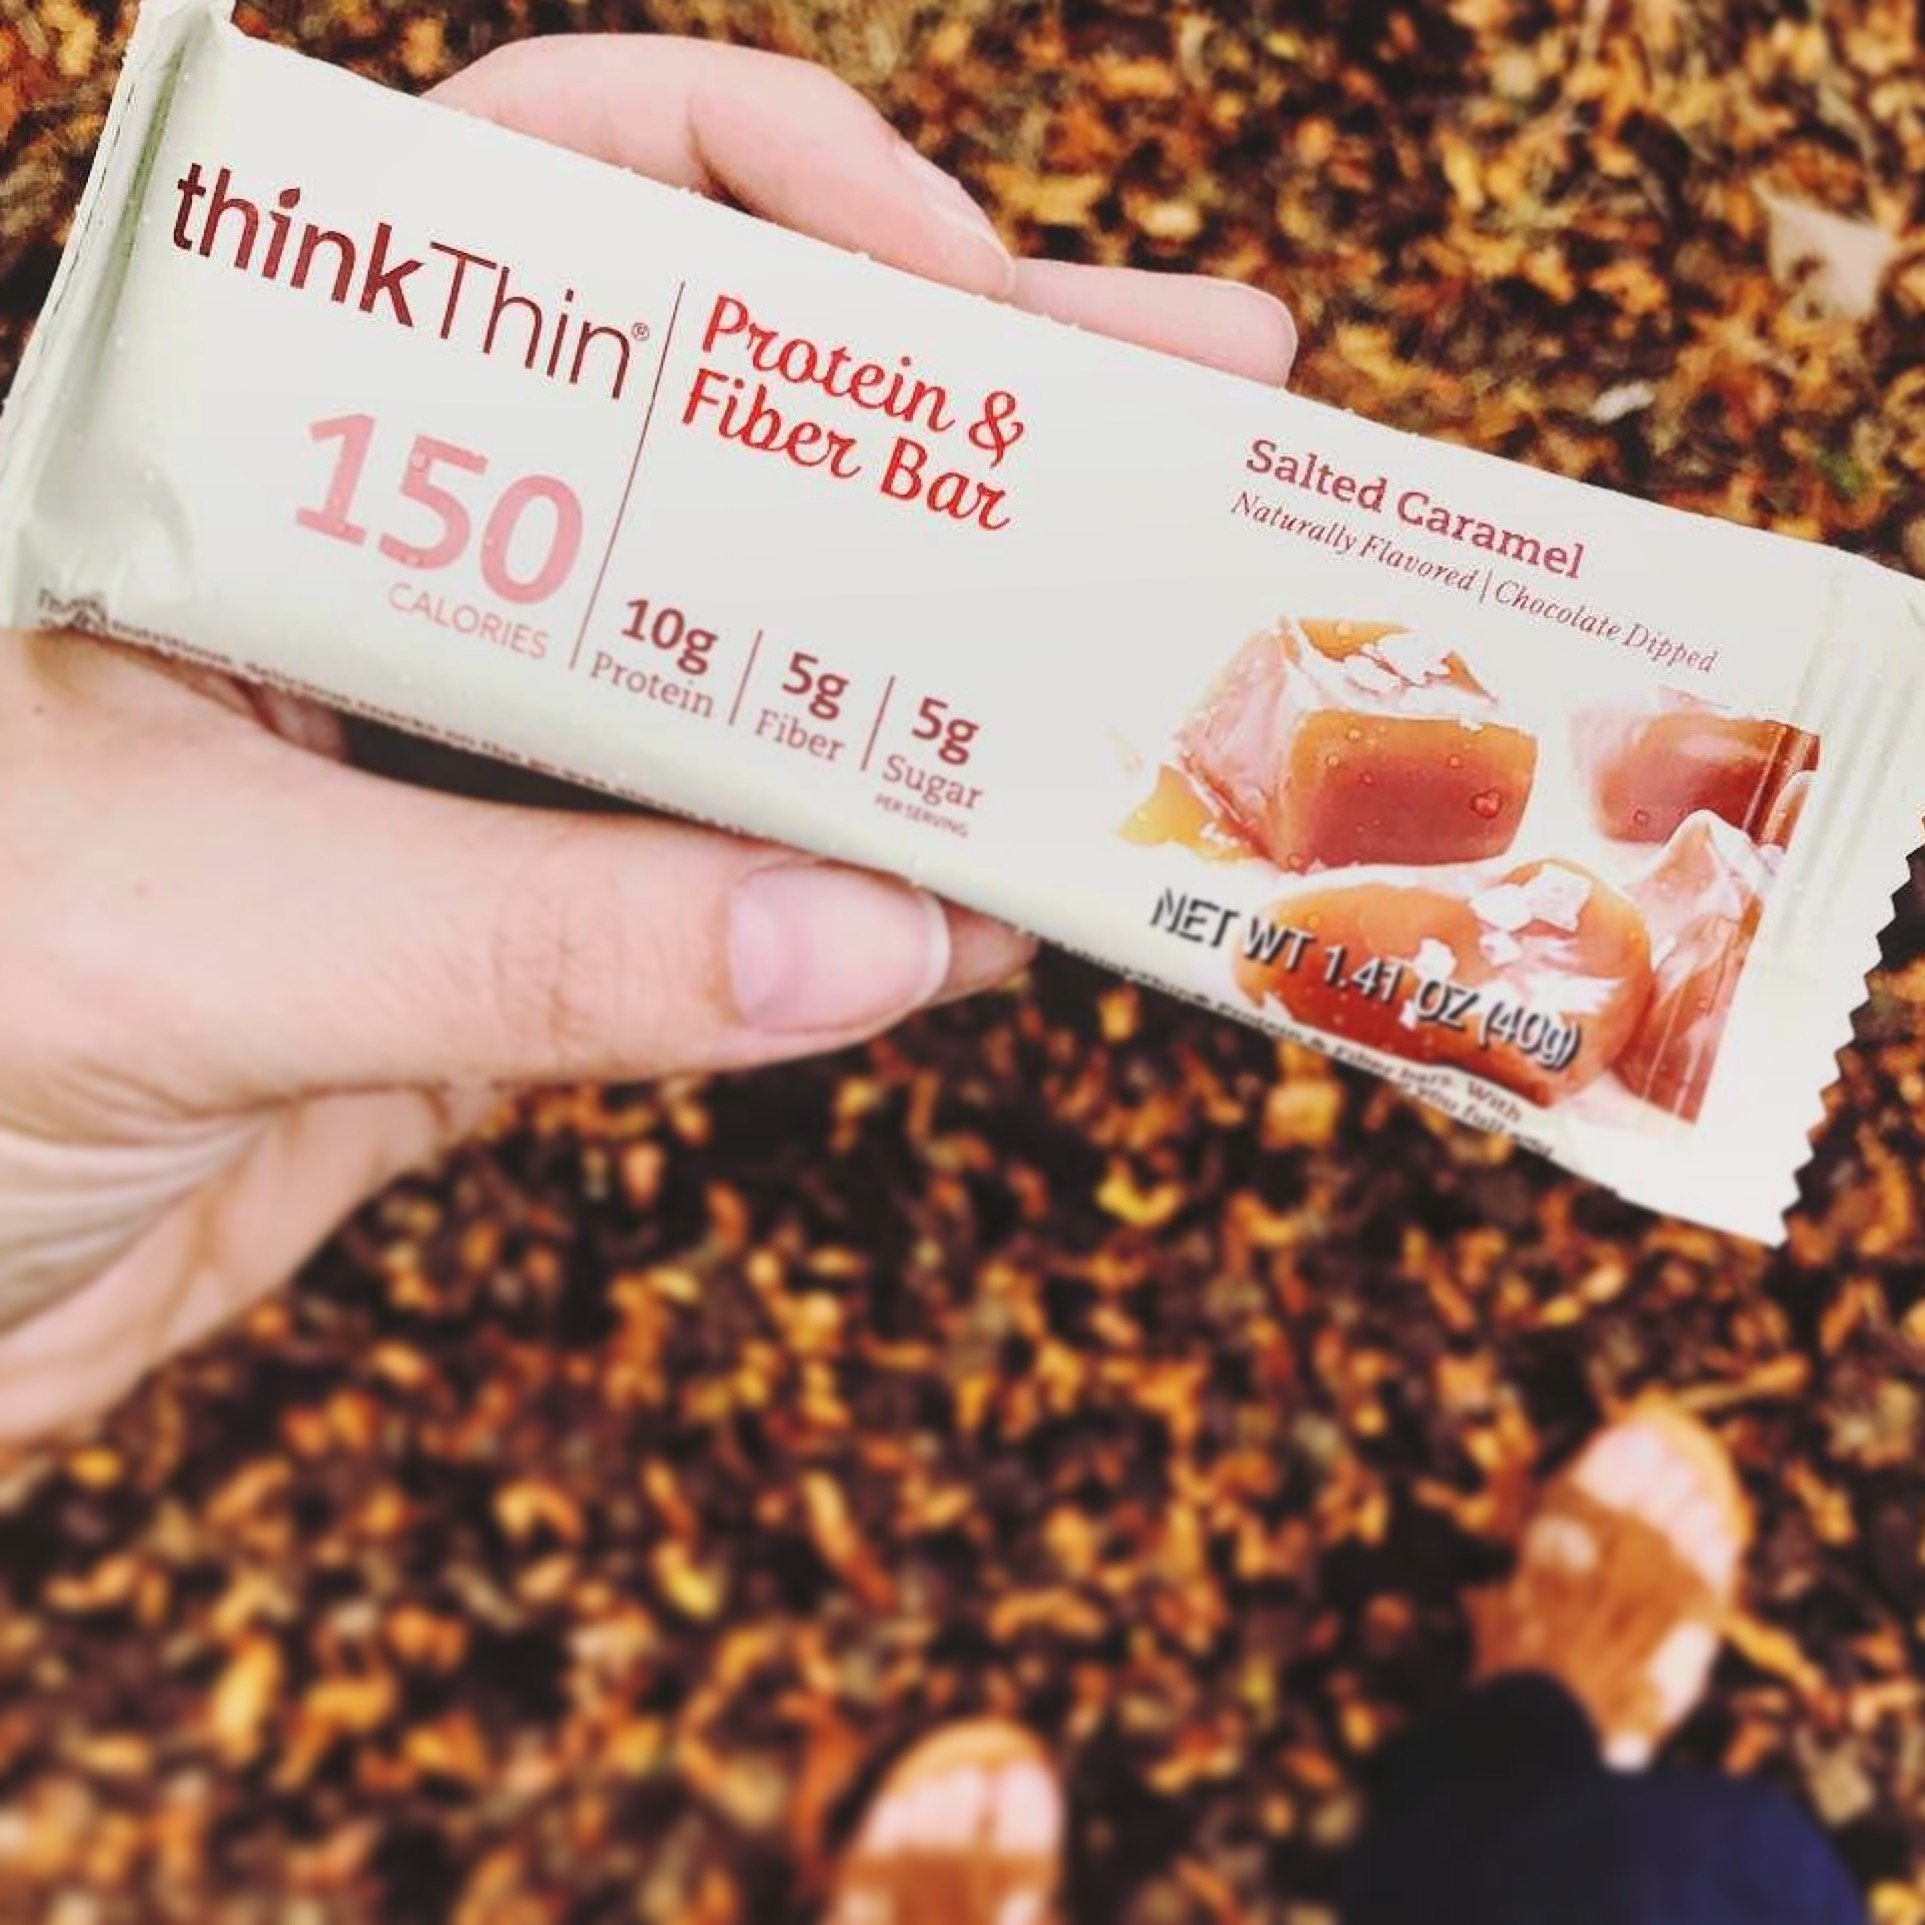 thinkThin Protein & Fiber Bars, Salted Caramel, 1.41 Ounce (20 Count) by thinkThin (Image #4)